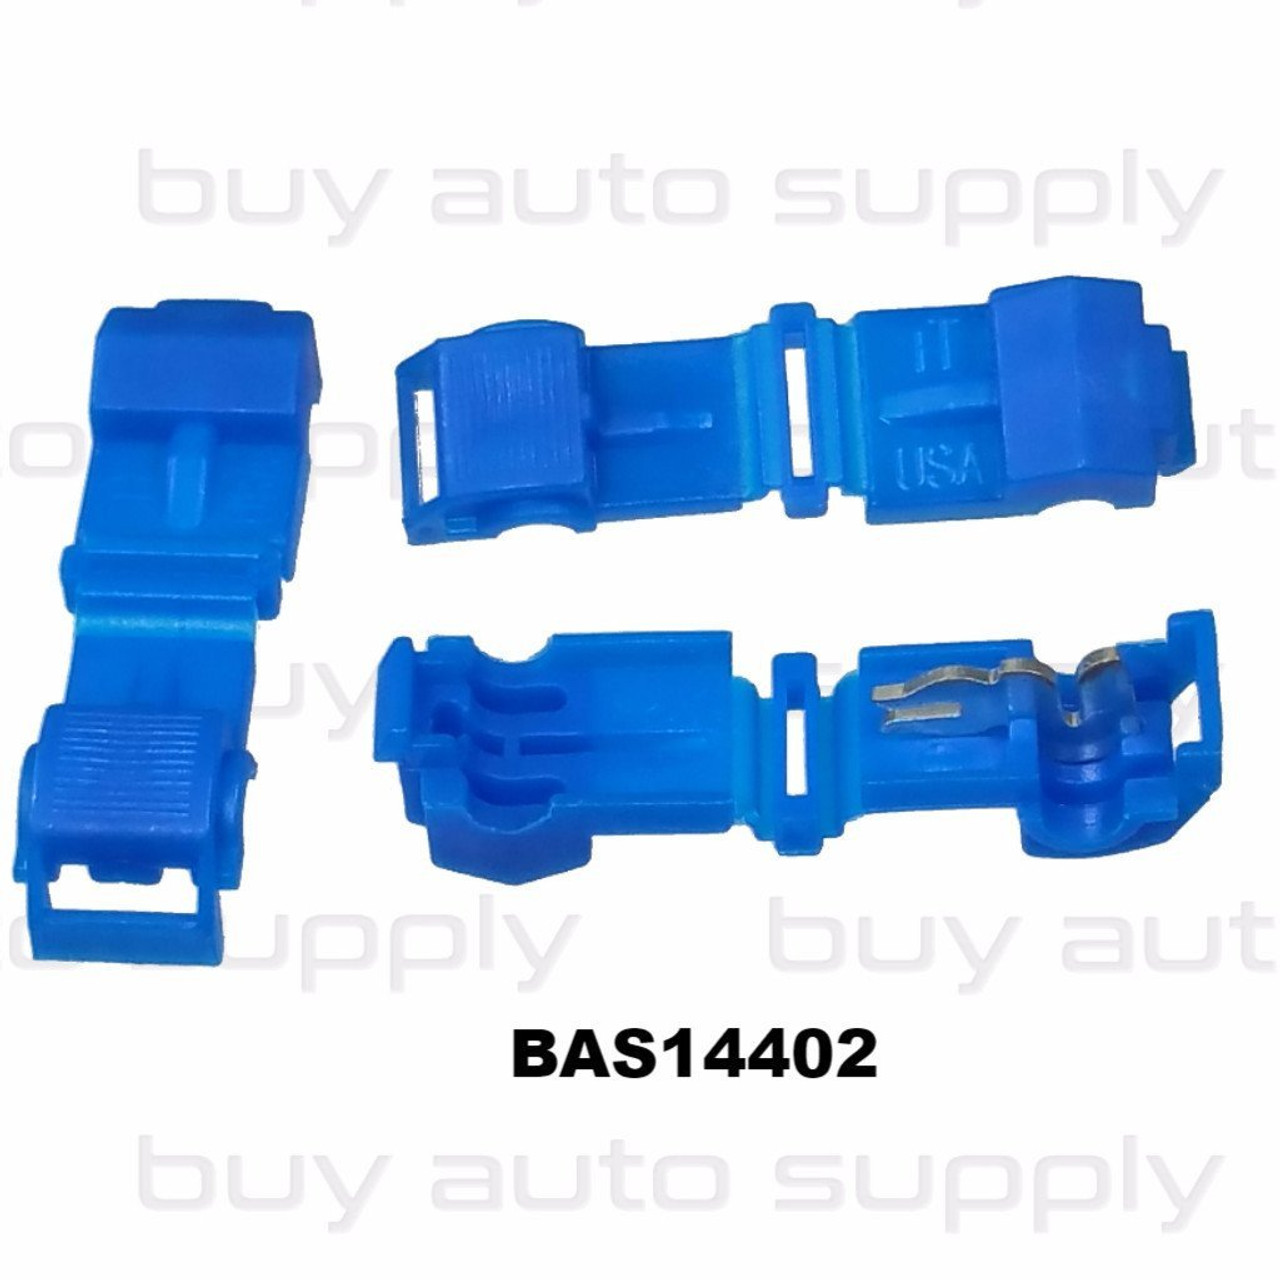 Blue Electrical T-Tap (16-14 AWG) - USA Made- BAS14402- from Buy Auto Supply